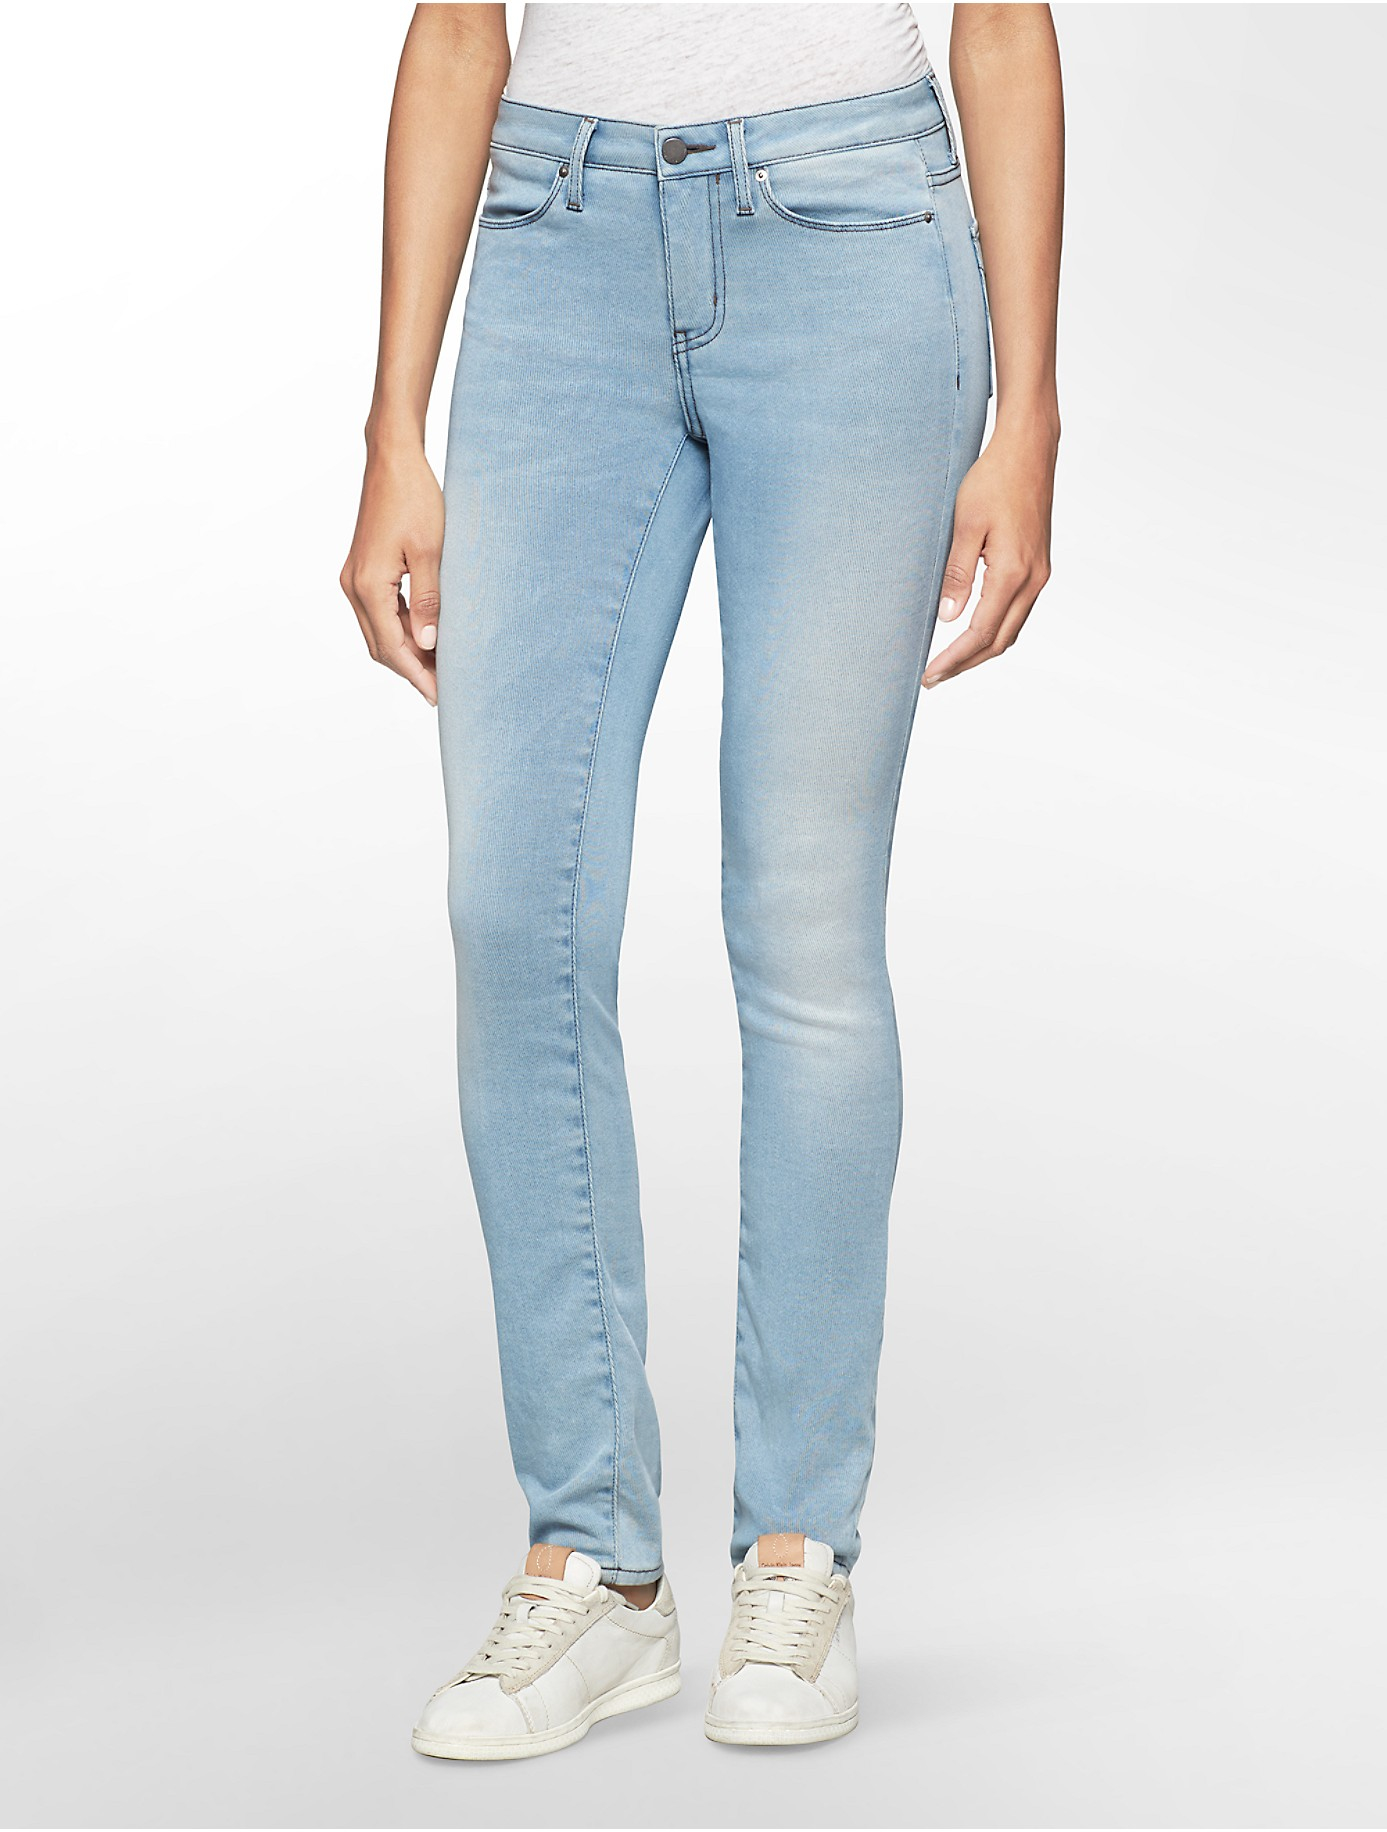 Powder Blue Stretch Skinny Jeans is rated out of 5 by 3. Rated 4 out of 5 by Steve from Nice comfortable skinny fit These jeans are really comfrotable and perfect for wearing during the day, at work or going out, and are equally perfect for wearing in an evening/5(3).